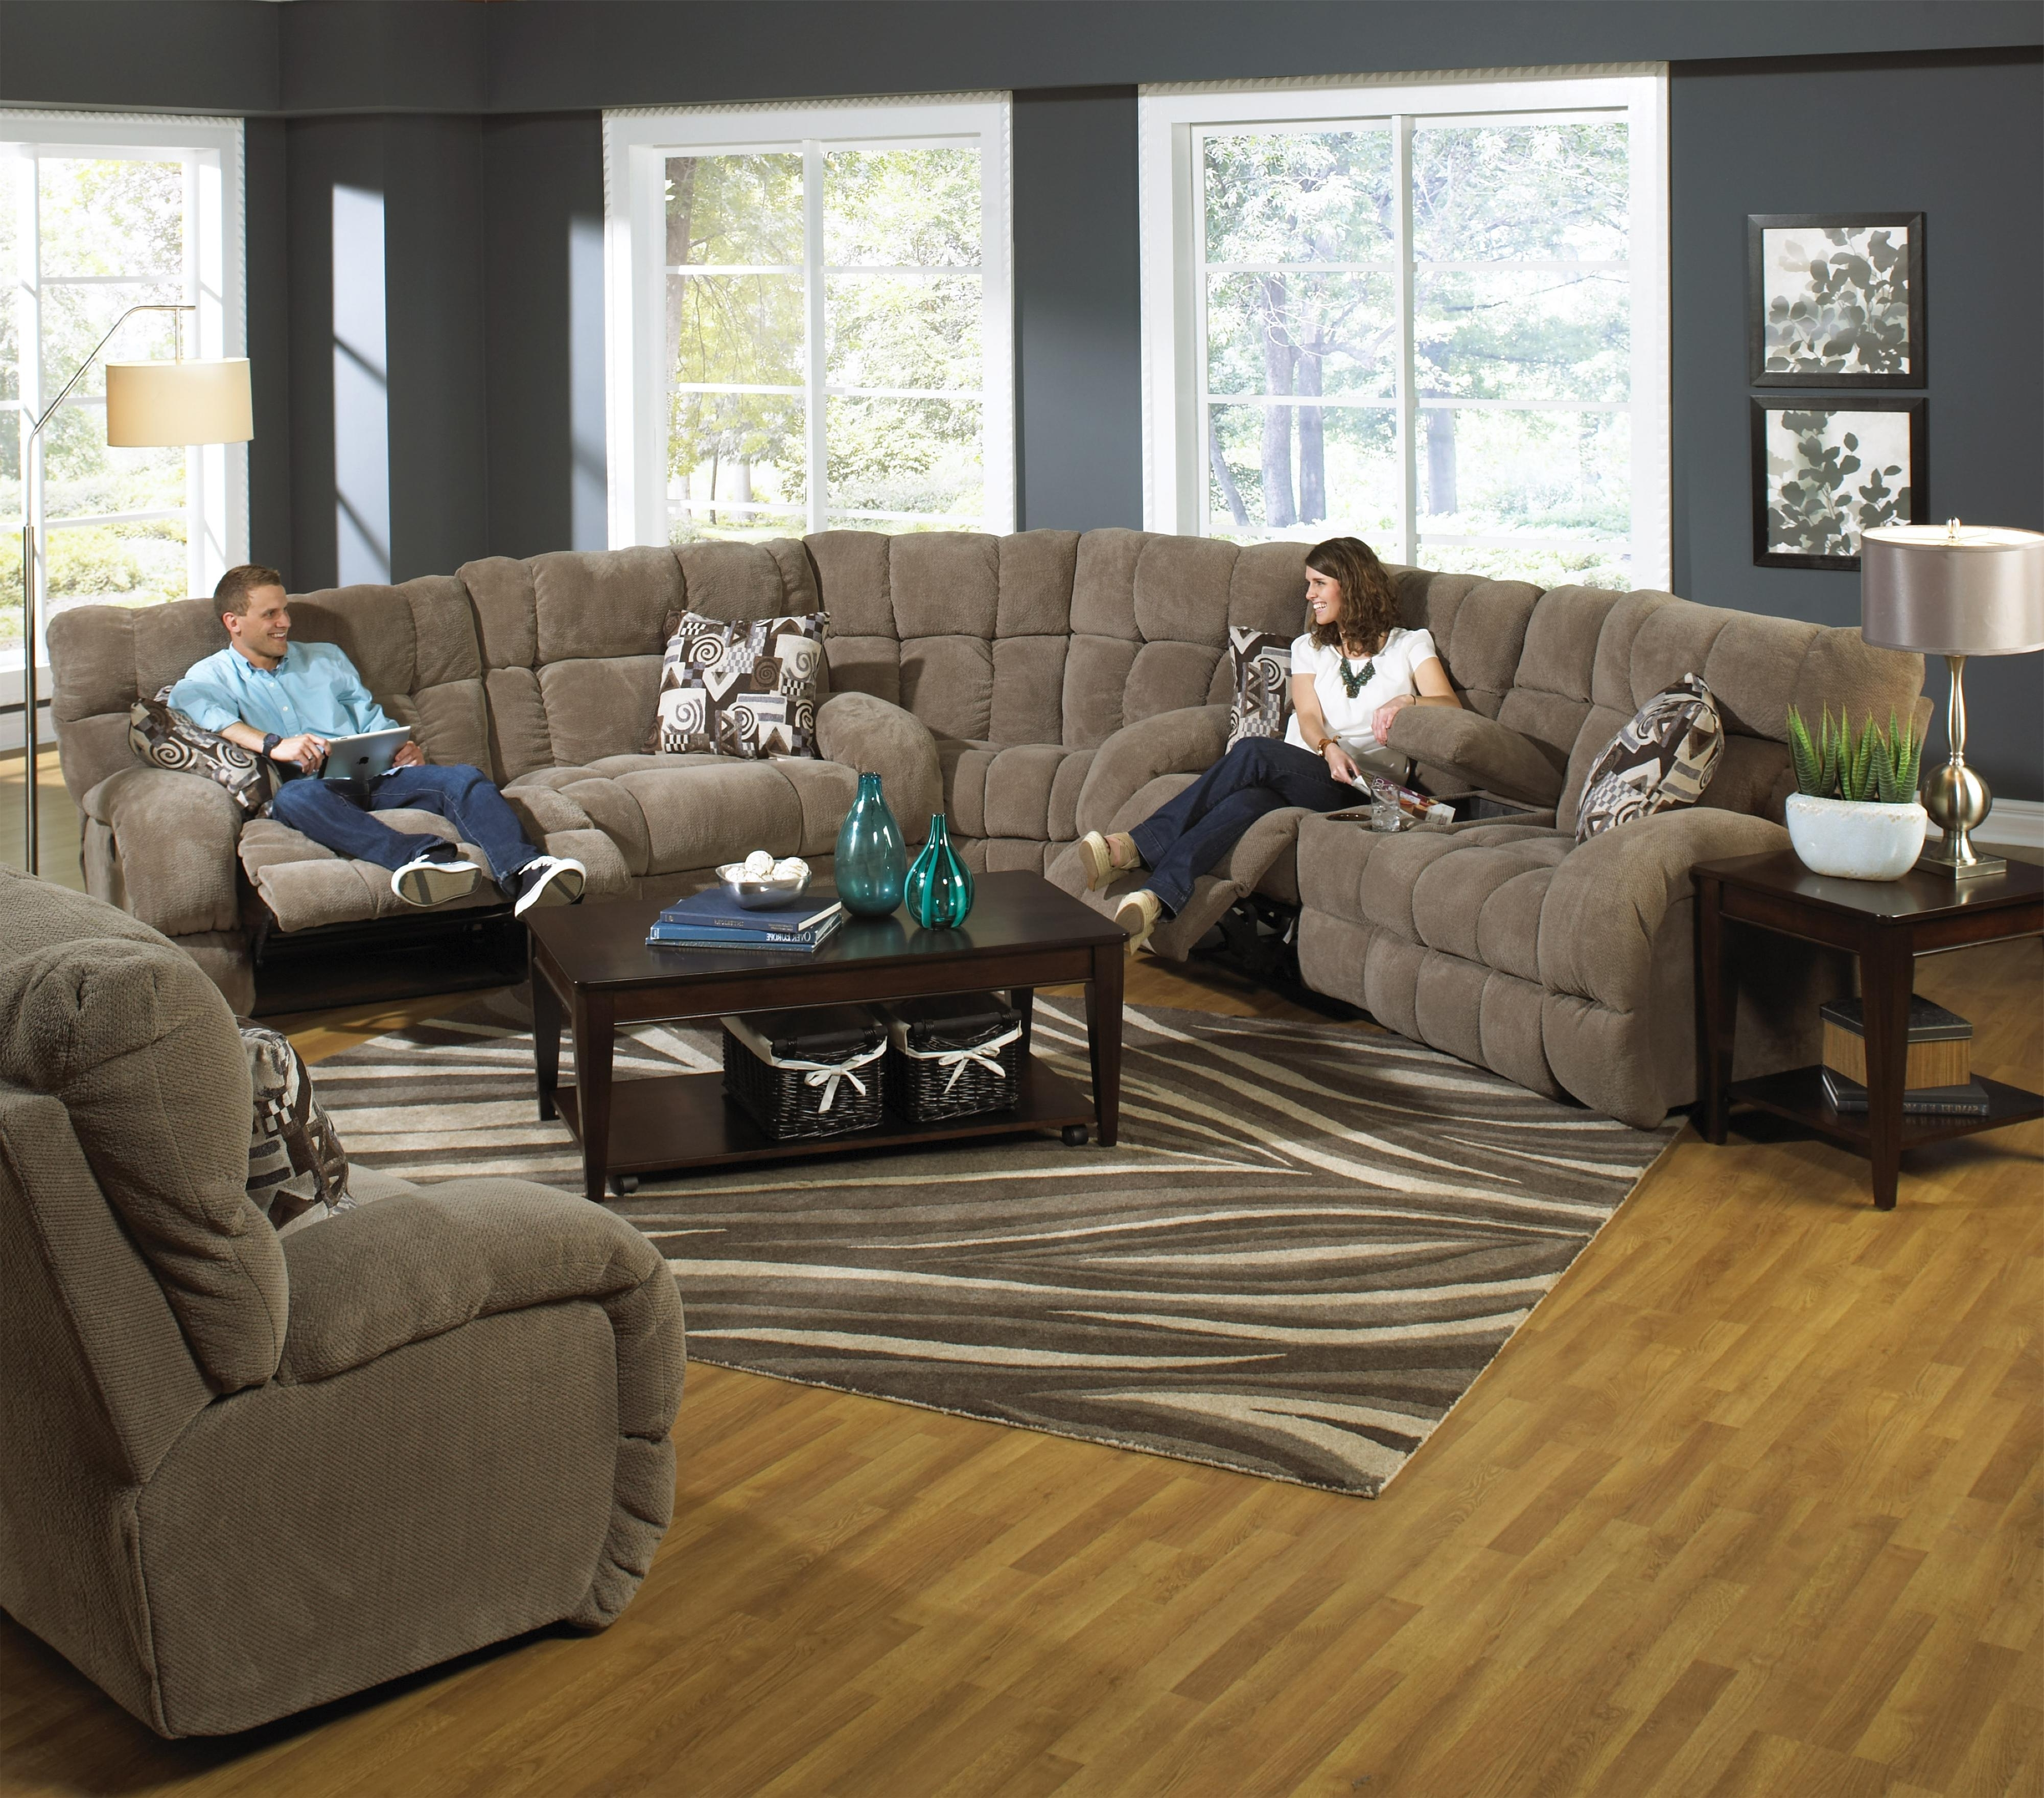 Fashionable Sectional Sofas With Power Recliners Throughout Catnapper Siesta Power Reclining Sectional Sofa With Cup Holders (View 8 of 20)